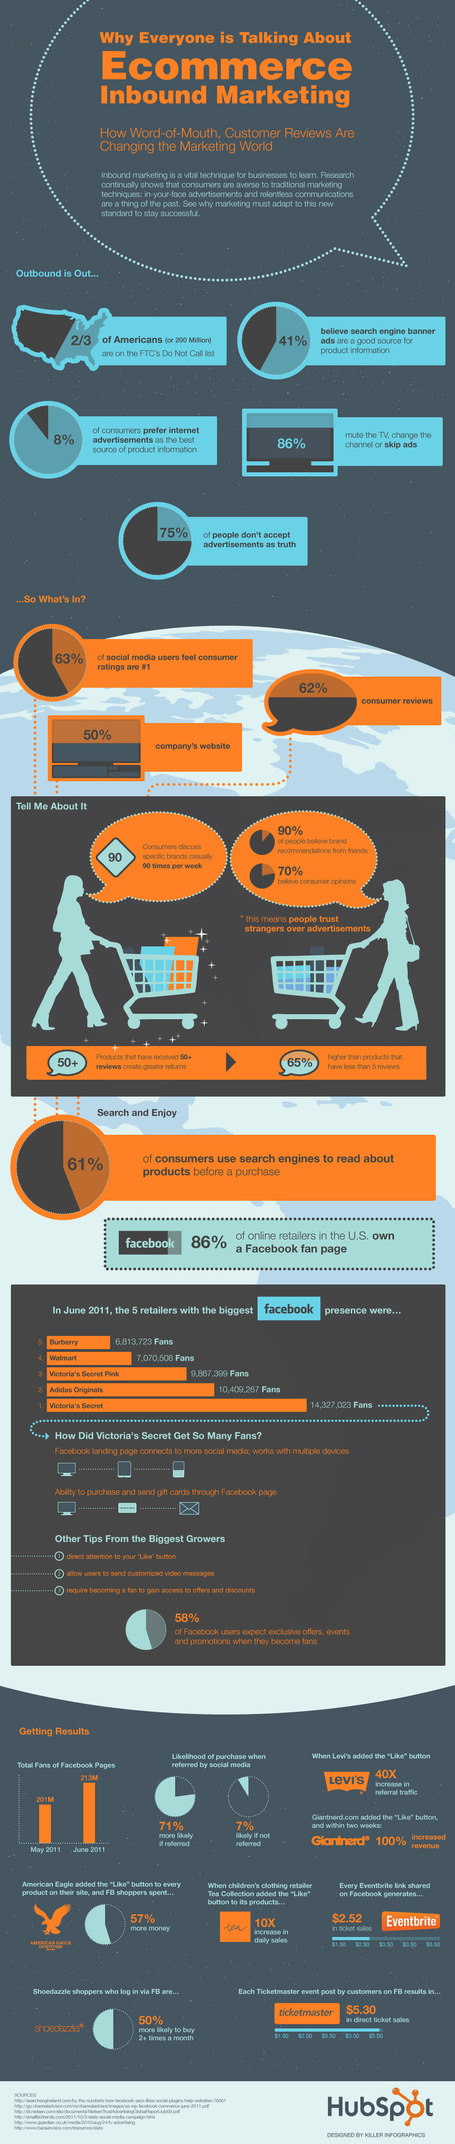 How Does Social Media Affect Purchase Decisions [INFOGRAPHIC] | Marcomms Design | Scoop.it